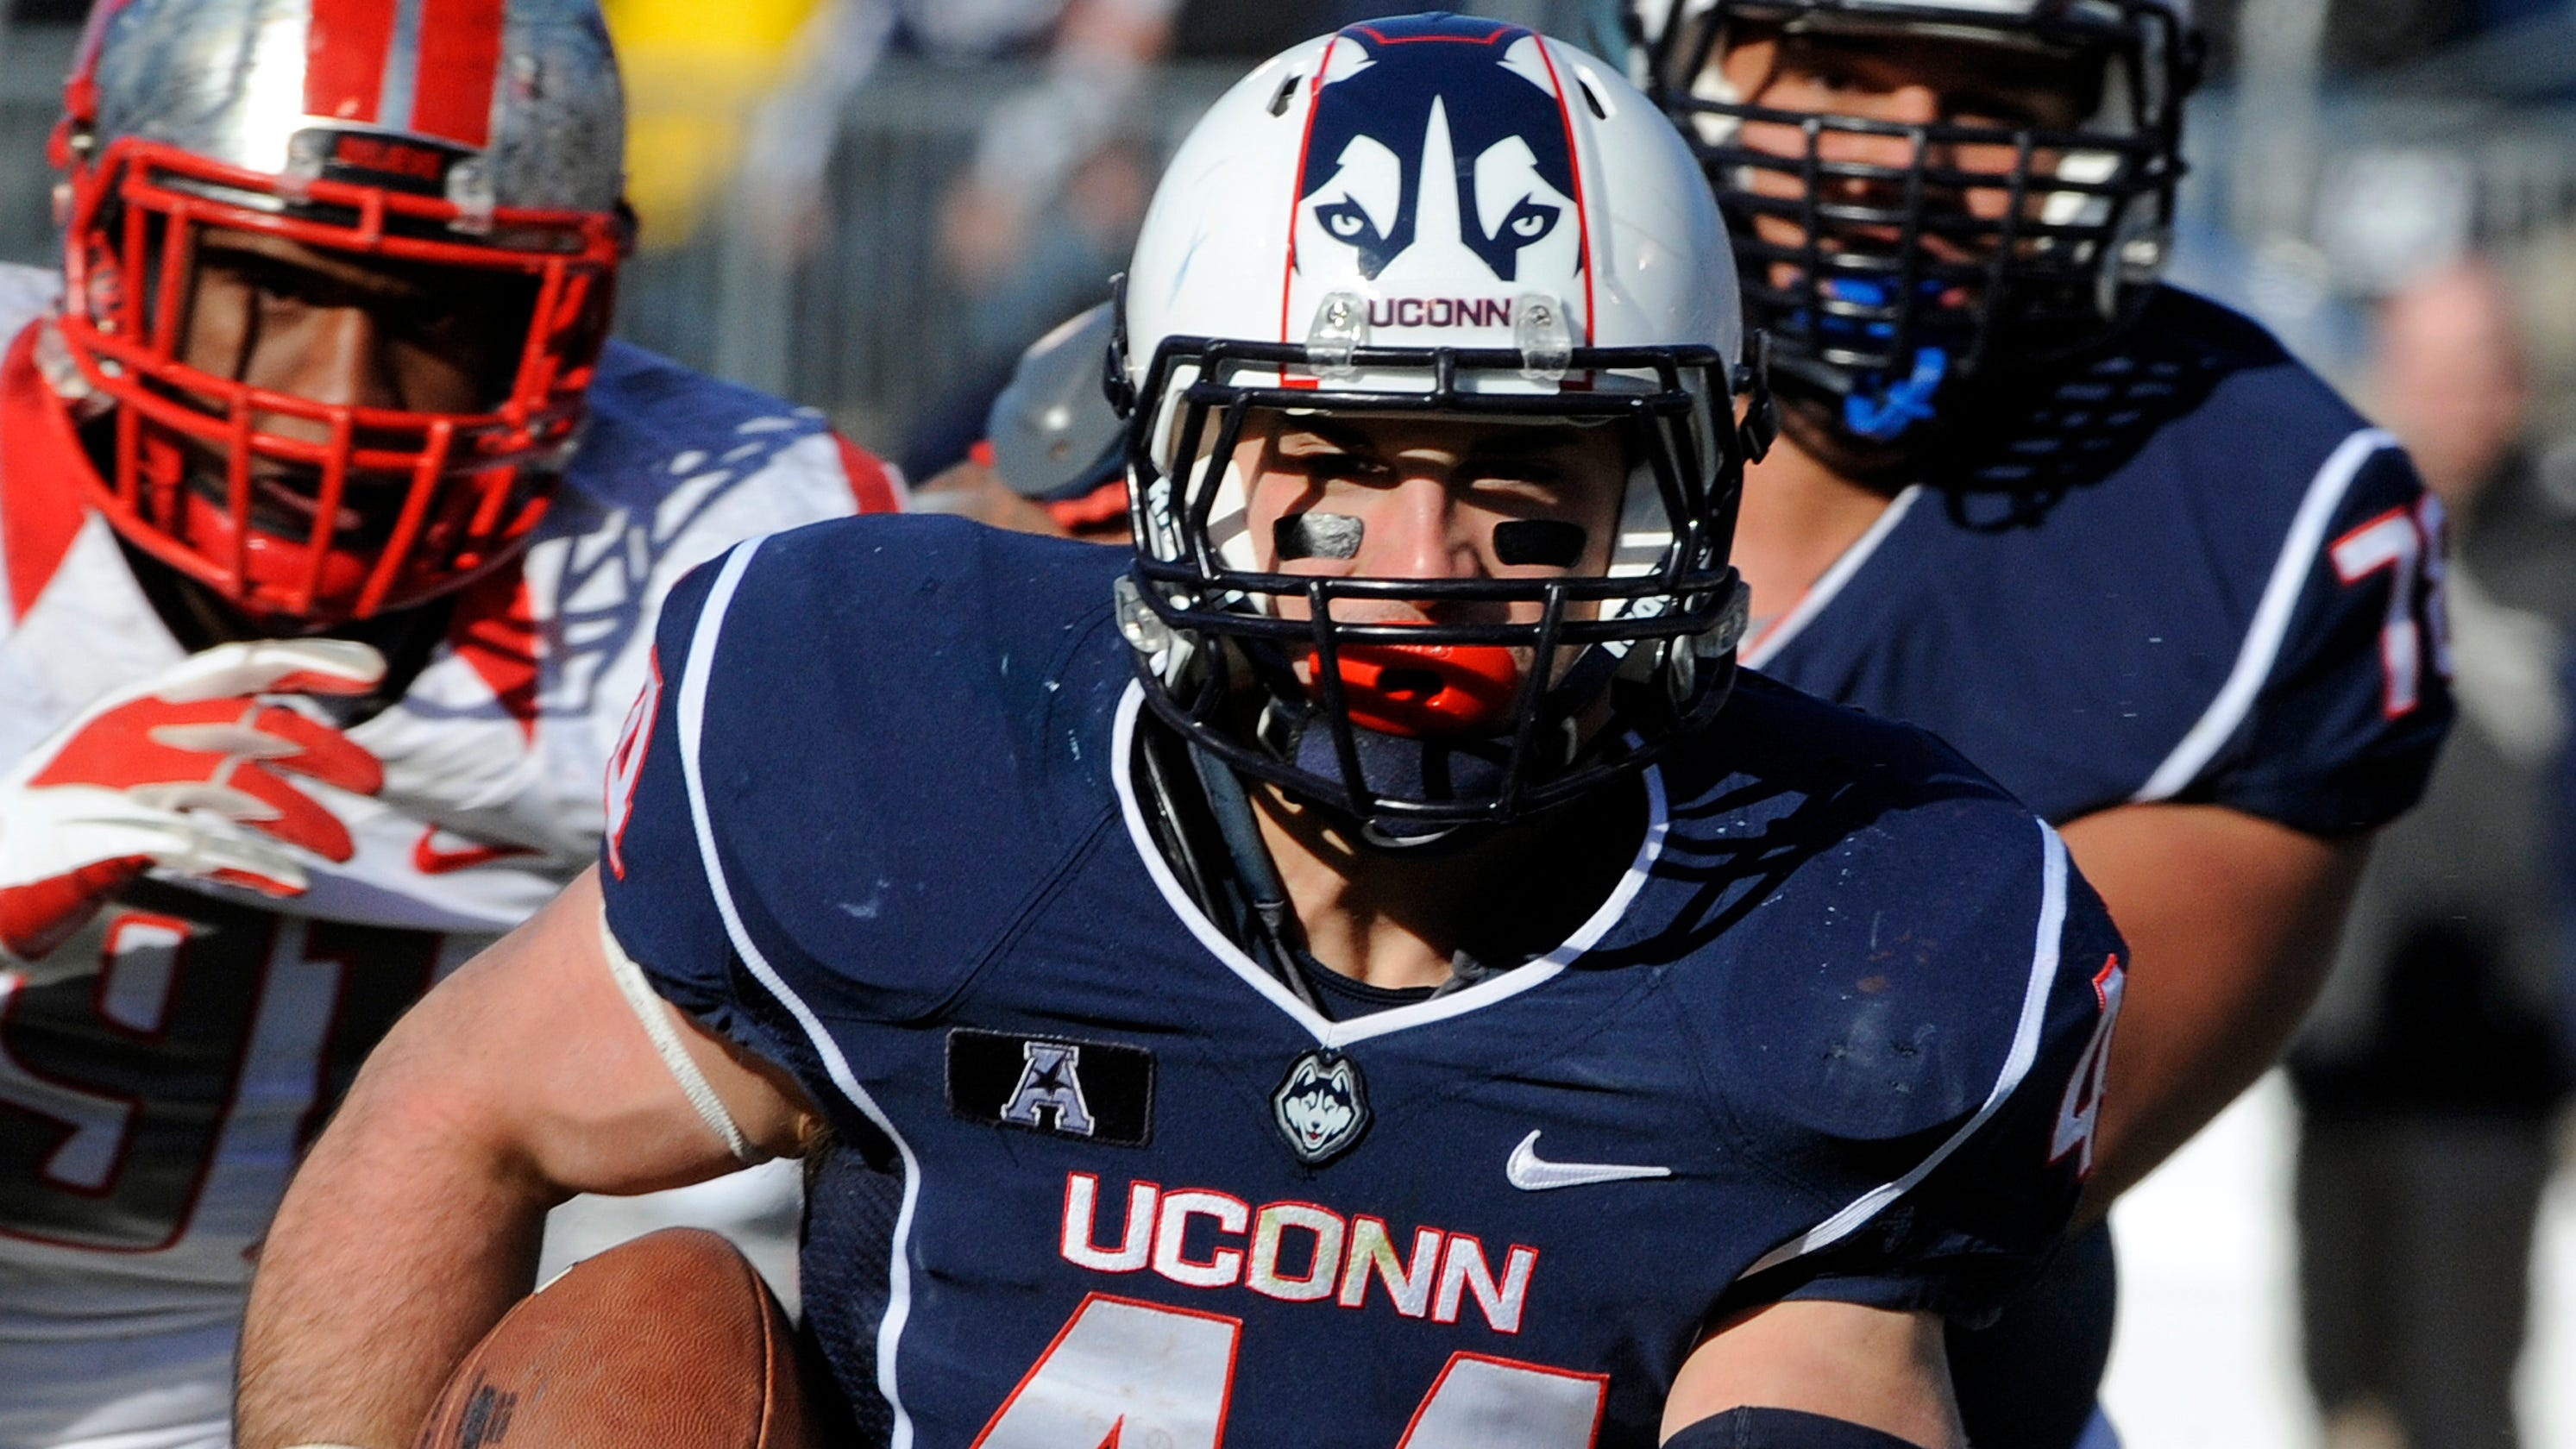 UConn rejoining the Big East means it has given up on football